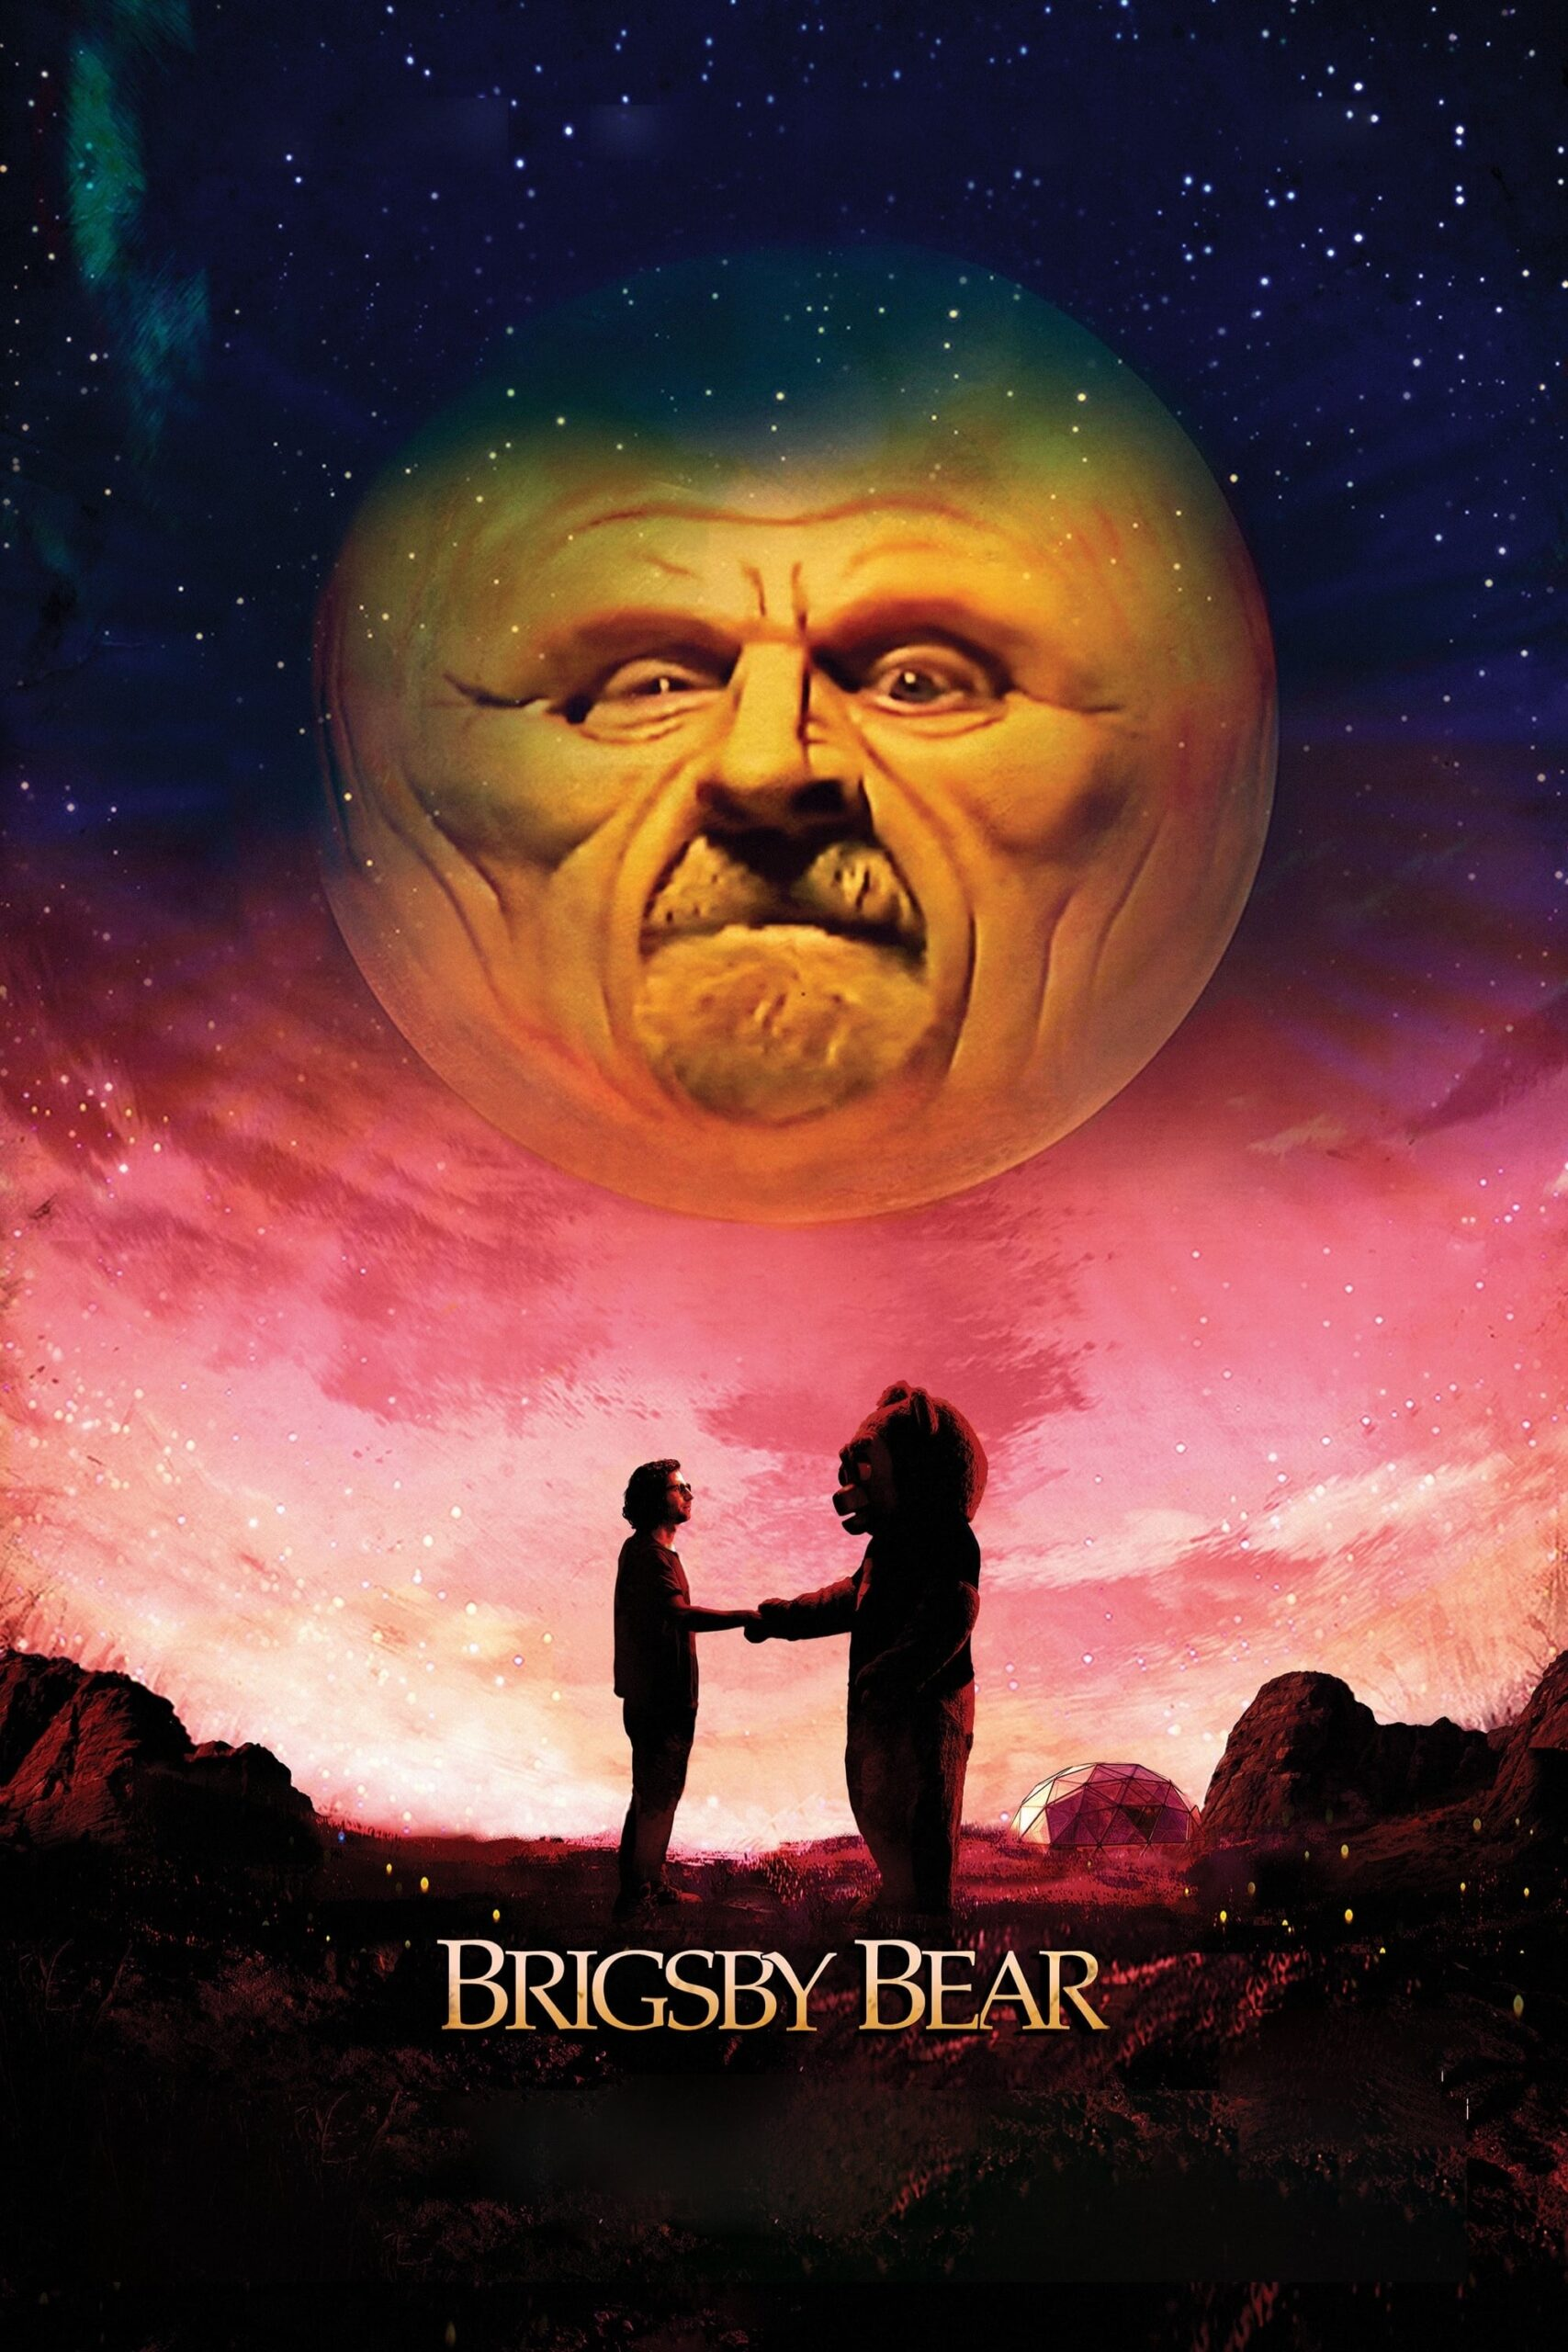 Brigsby Bear Movie Streaming Online Watch on Google Play, Youtube, iTunes